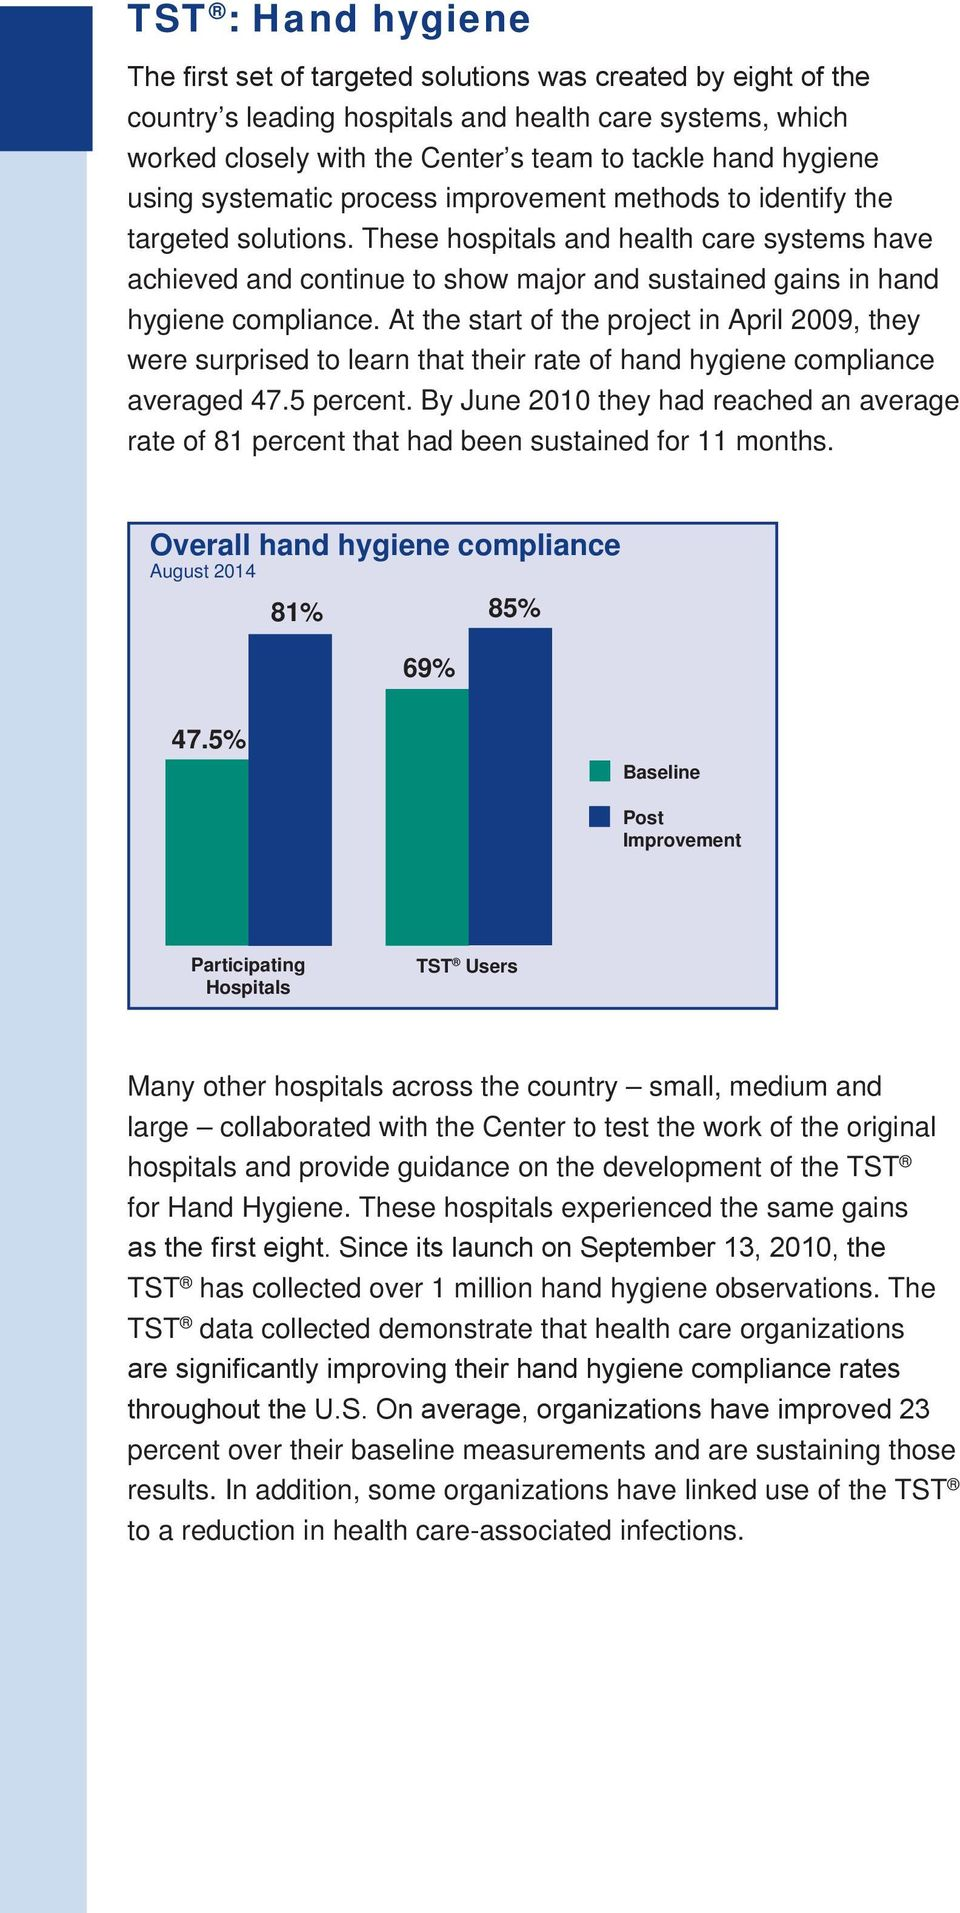 These hospitals and health care systems have achieved and continue to show major and sustained gains in hand hygiene compliance.